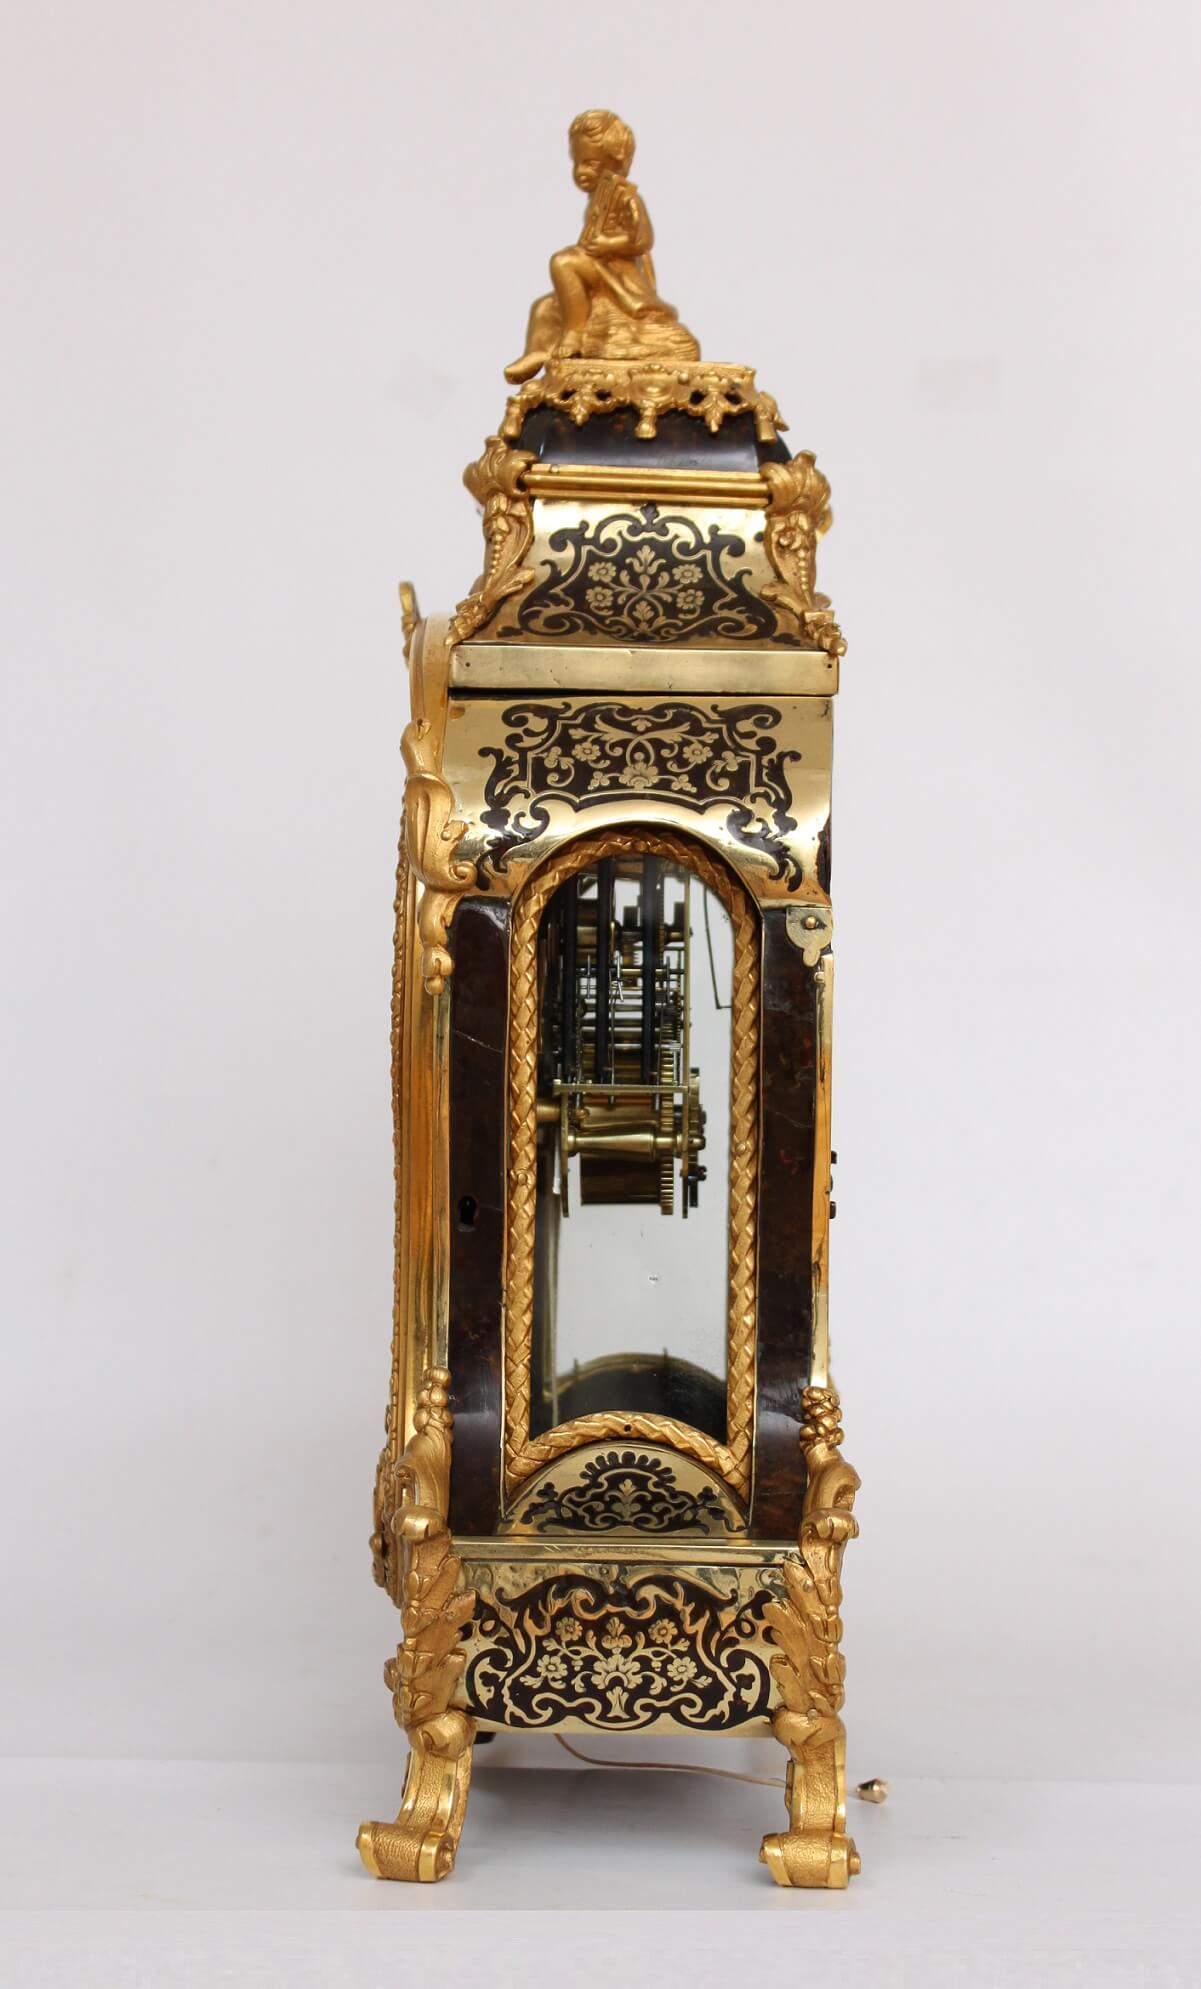 French-antique Clock-Regence-Boulle-Delorme-quarter Repeat-console-bracket Clock